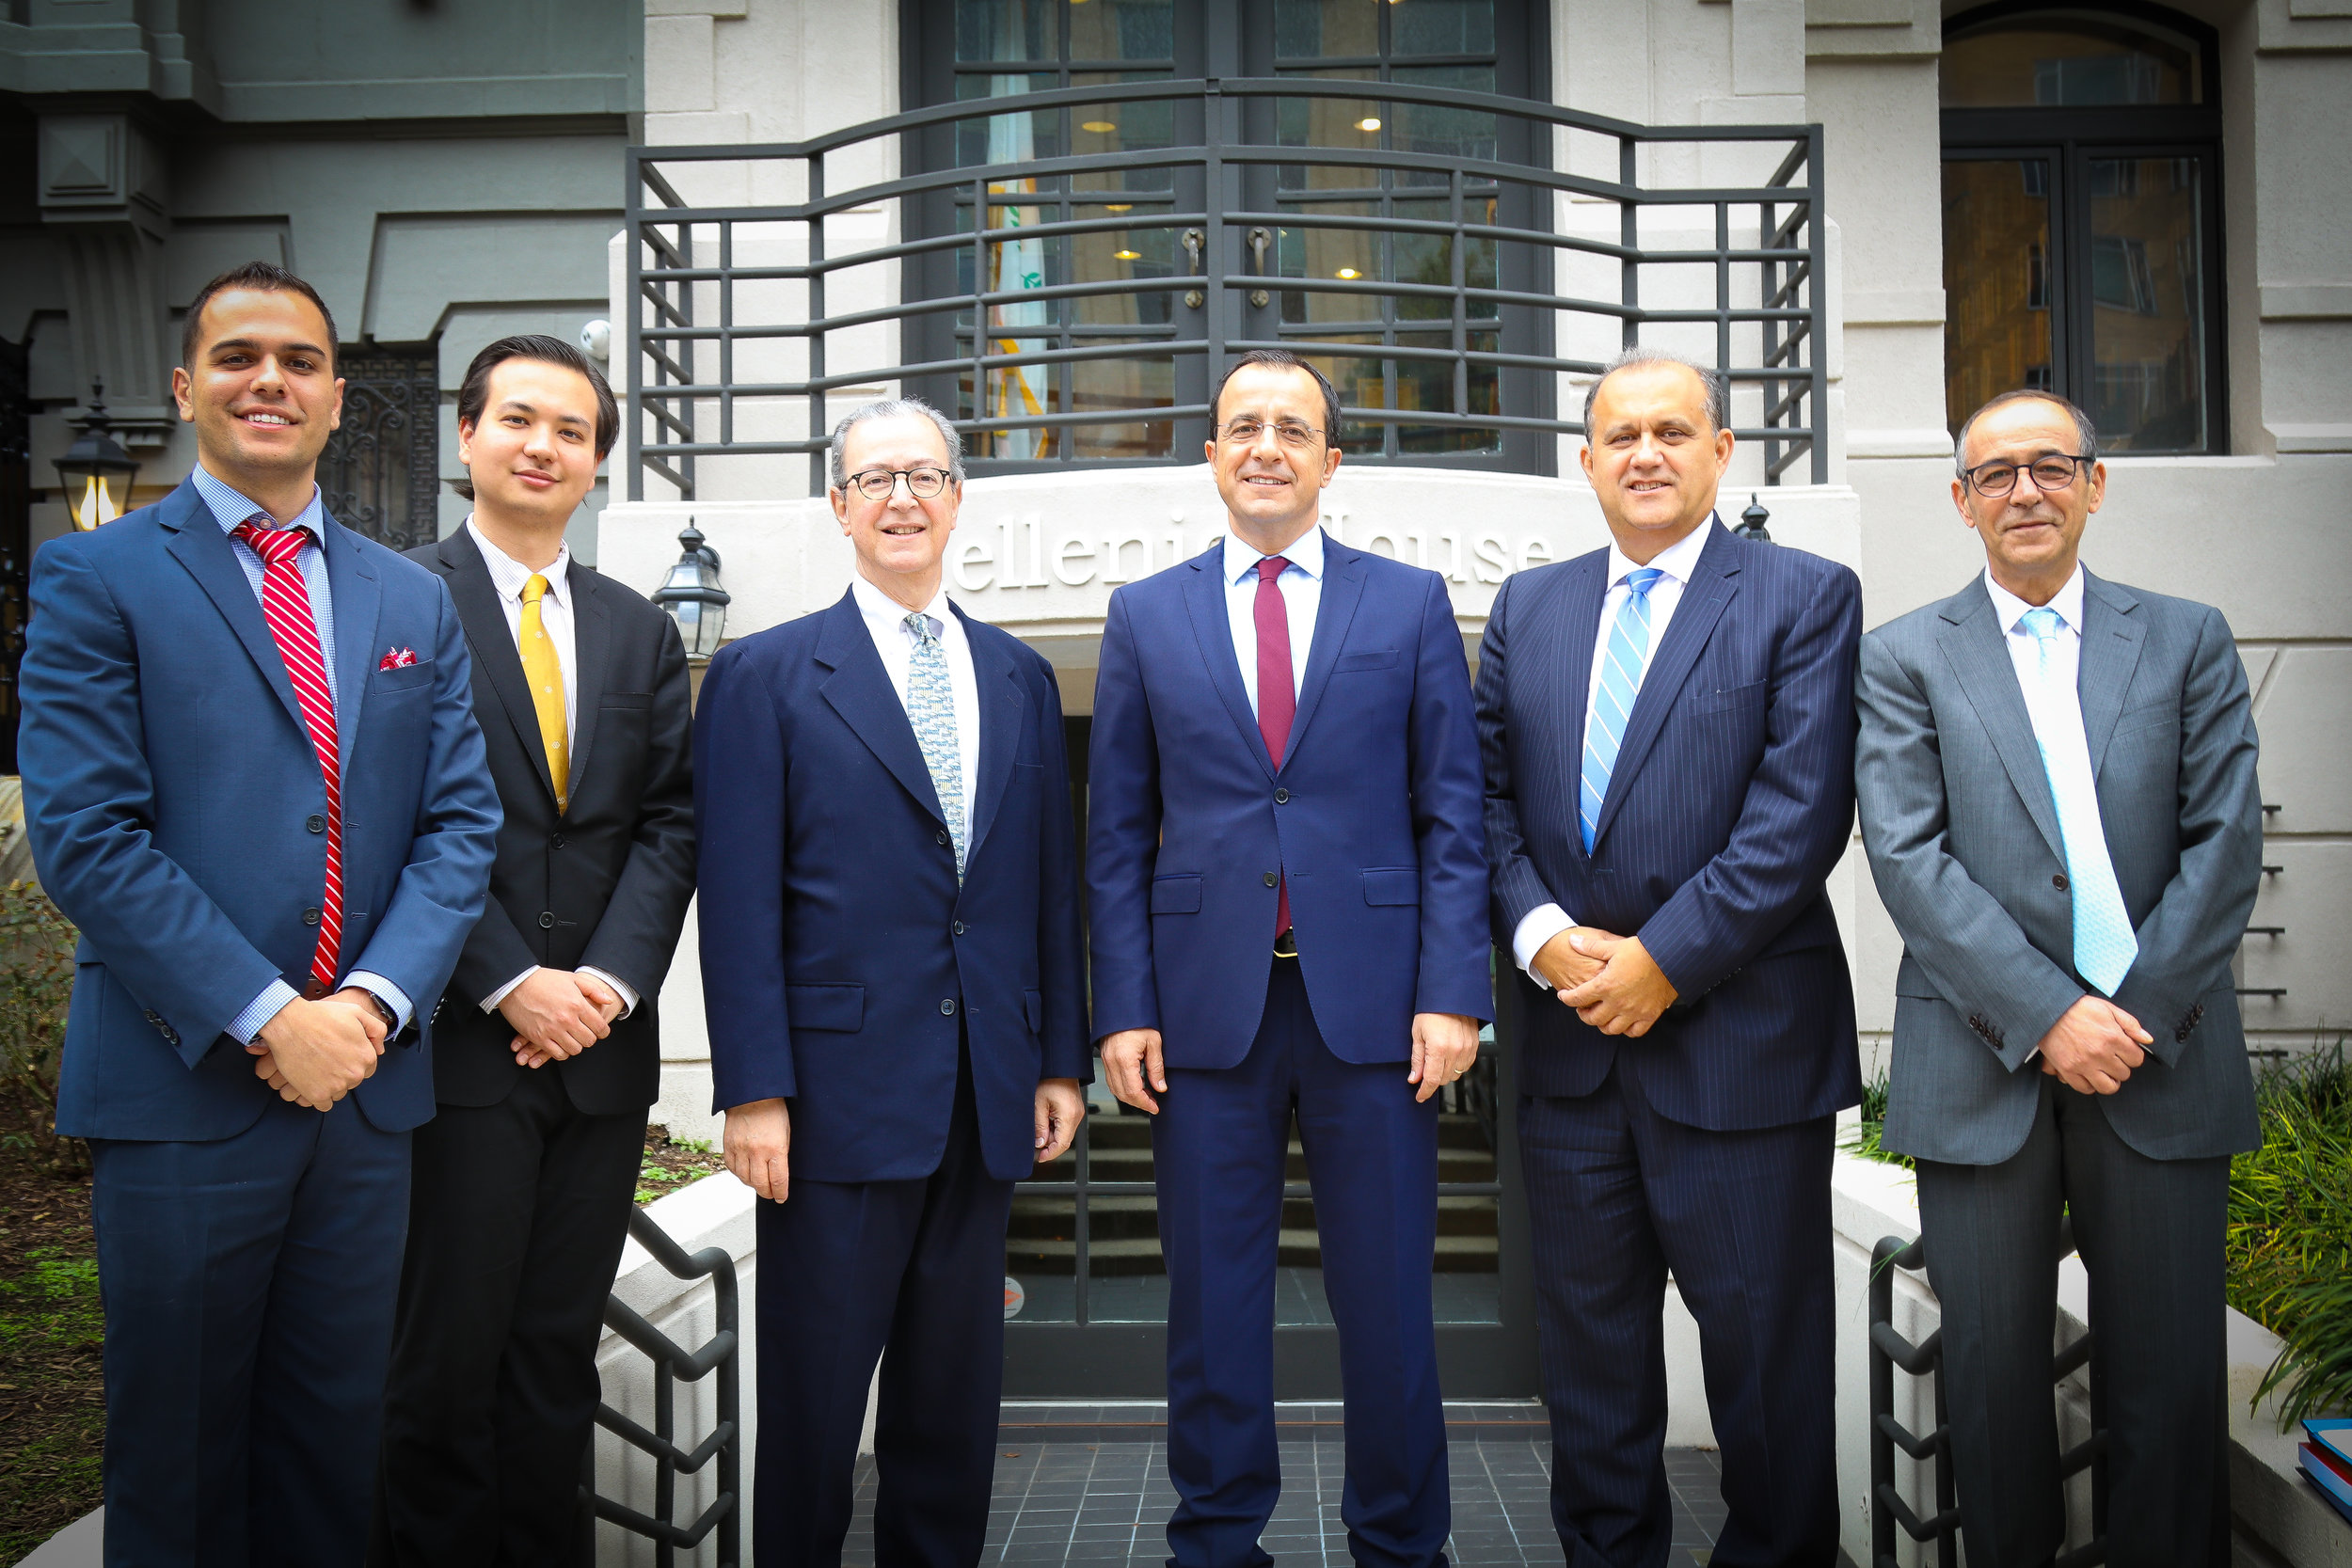 (R-L) Peter Milios, AHI Legislative Director; Elias Gerasoulis, AHI Legislative Assistant; James Marketos, Esq., AHI Board Member; Nikos Christodoulides, Foreign Minister of Cyprus; Nick Larigakis, AHI President, Ambassador Marios Lyssiotis, Ambassador of Cyprus to the U.S.